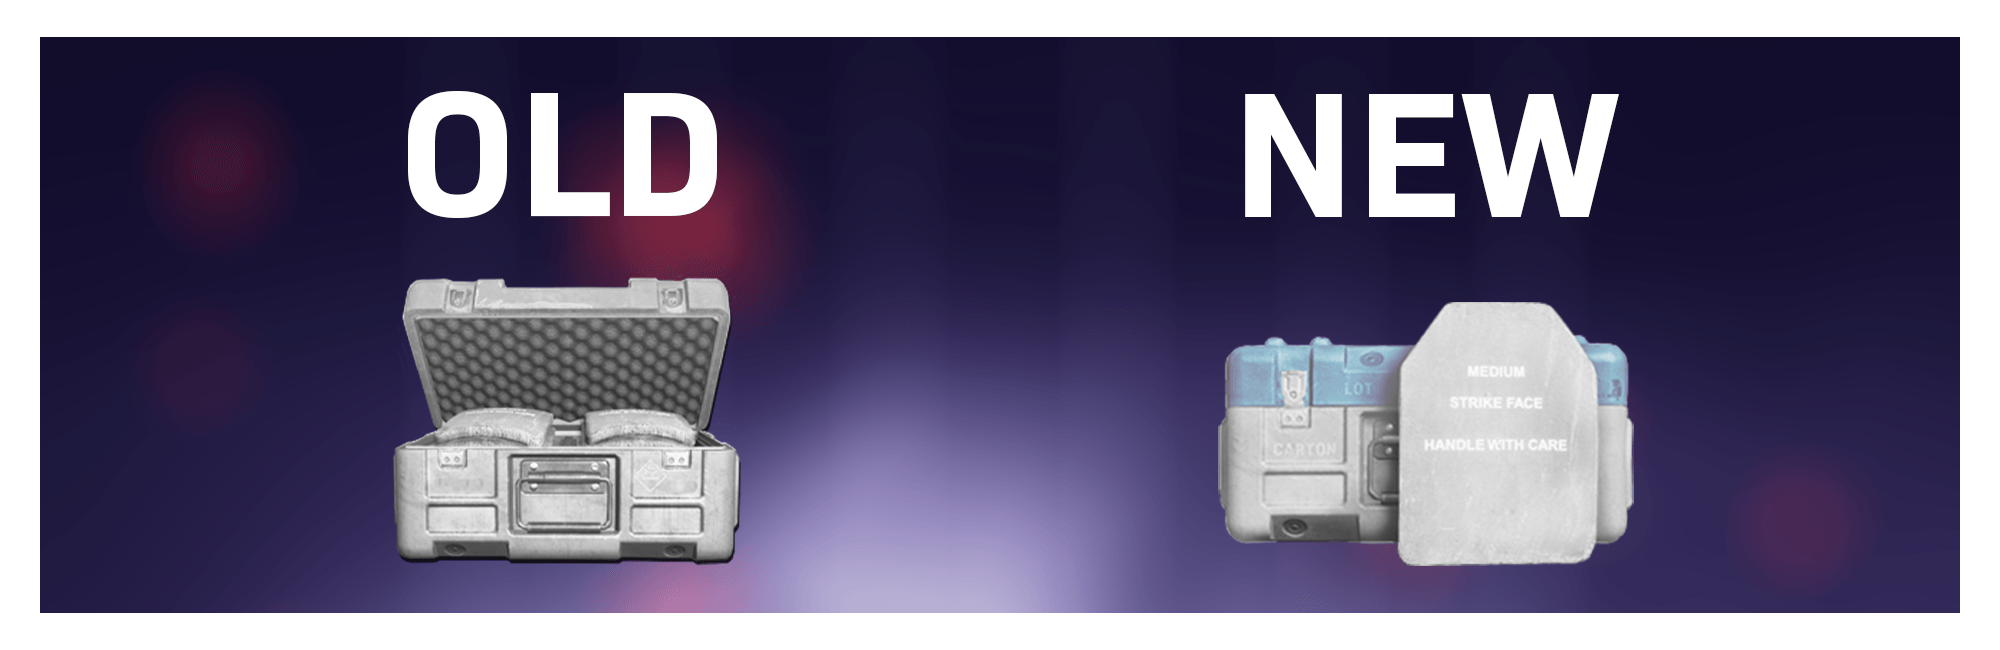 Banner showing the old and new icons for Armor Boxes.